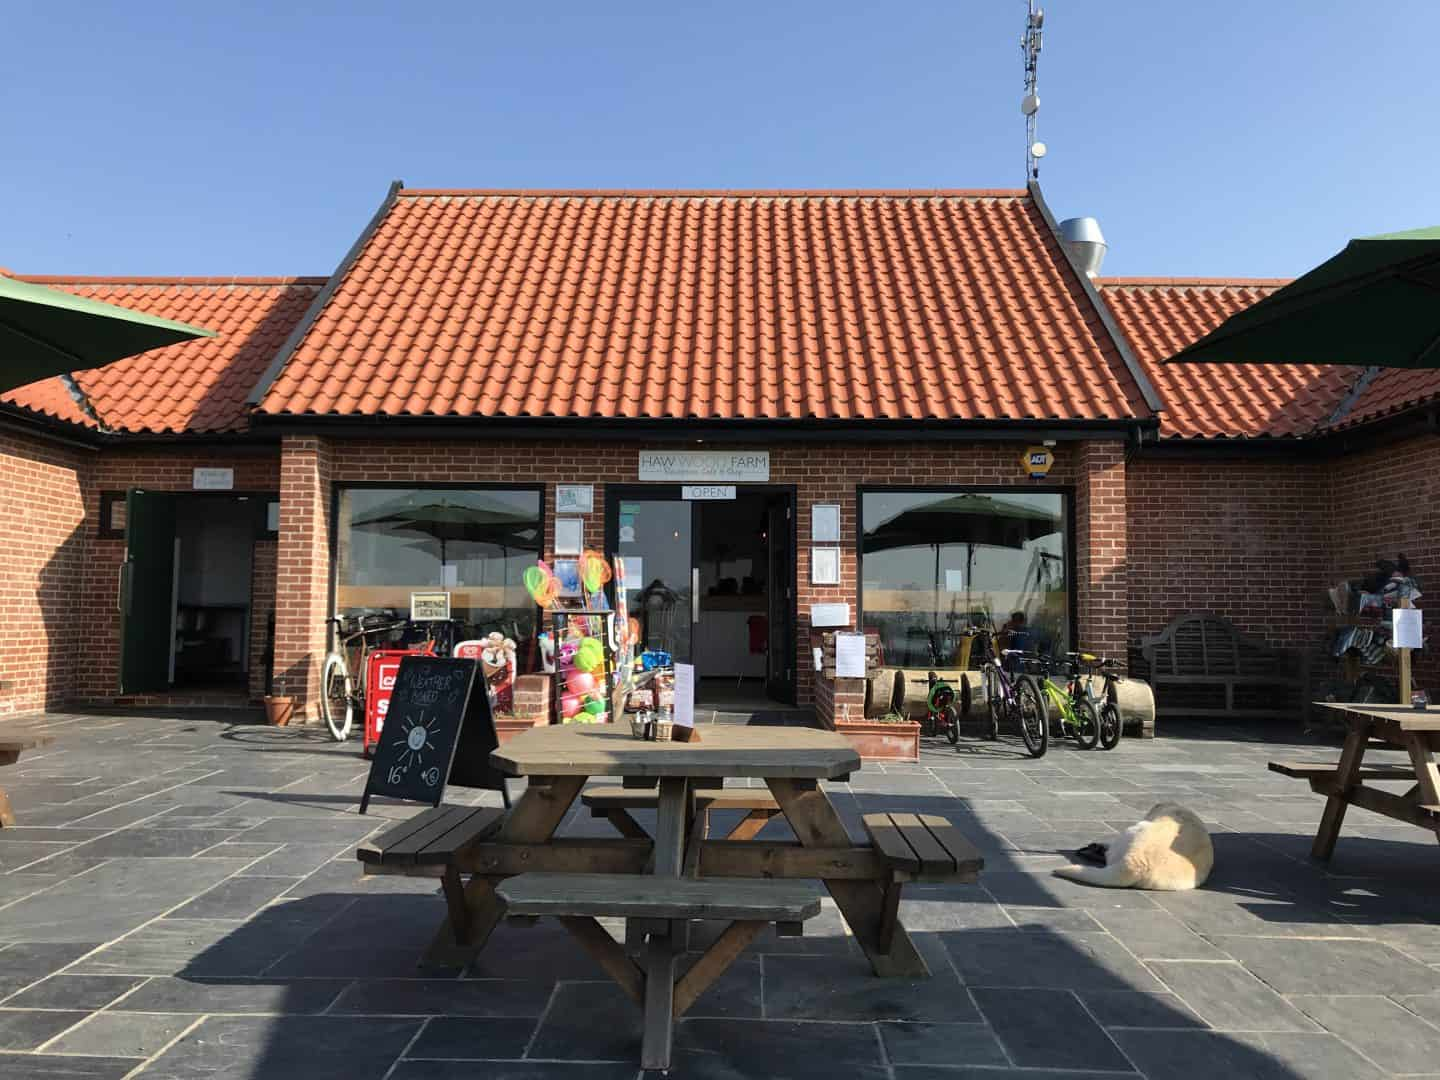 Haw Wood Farm's shop and cafe with outside and indoor seating